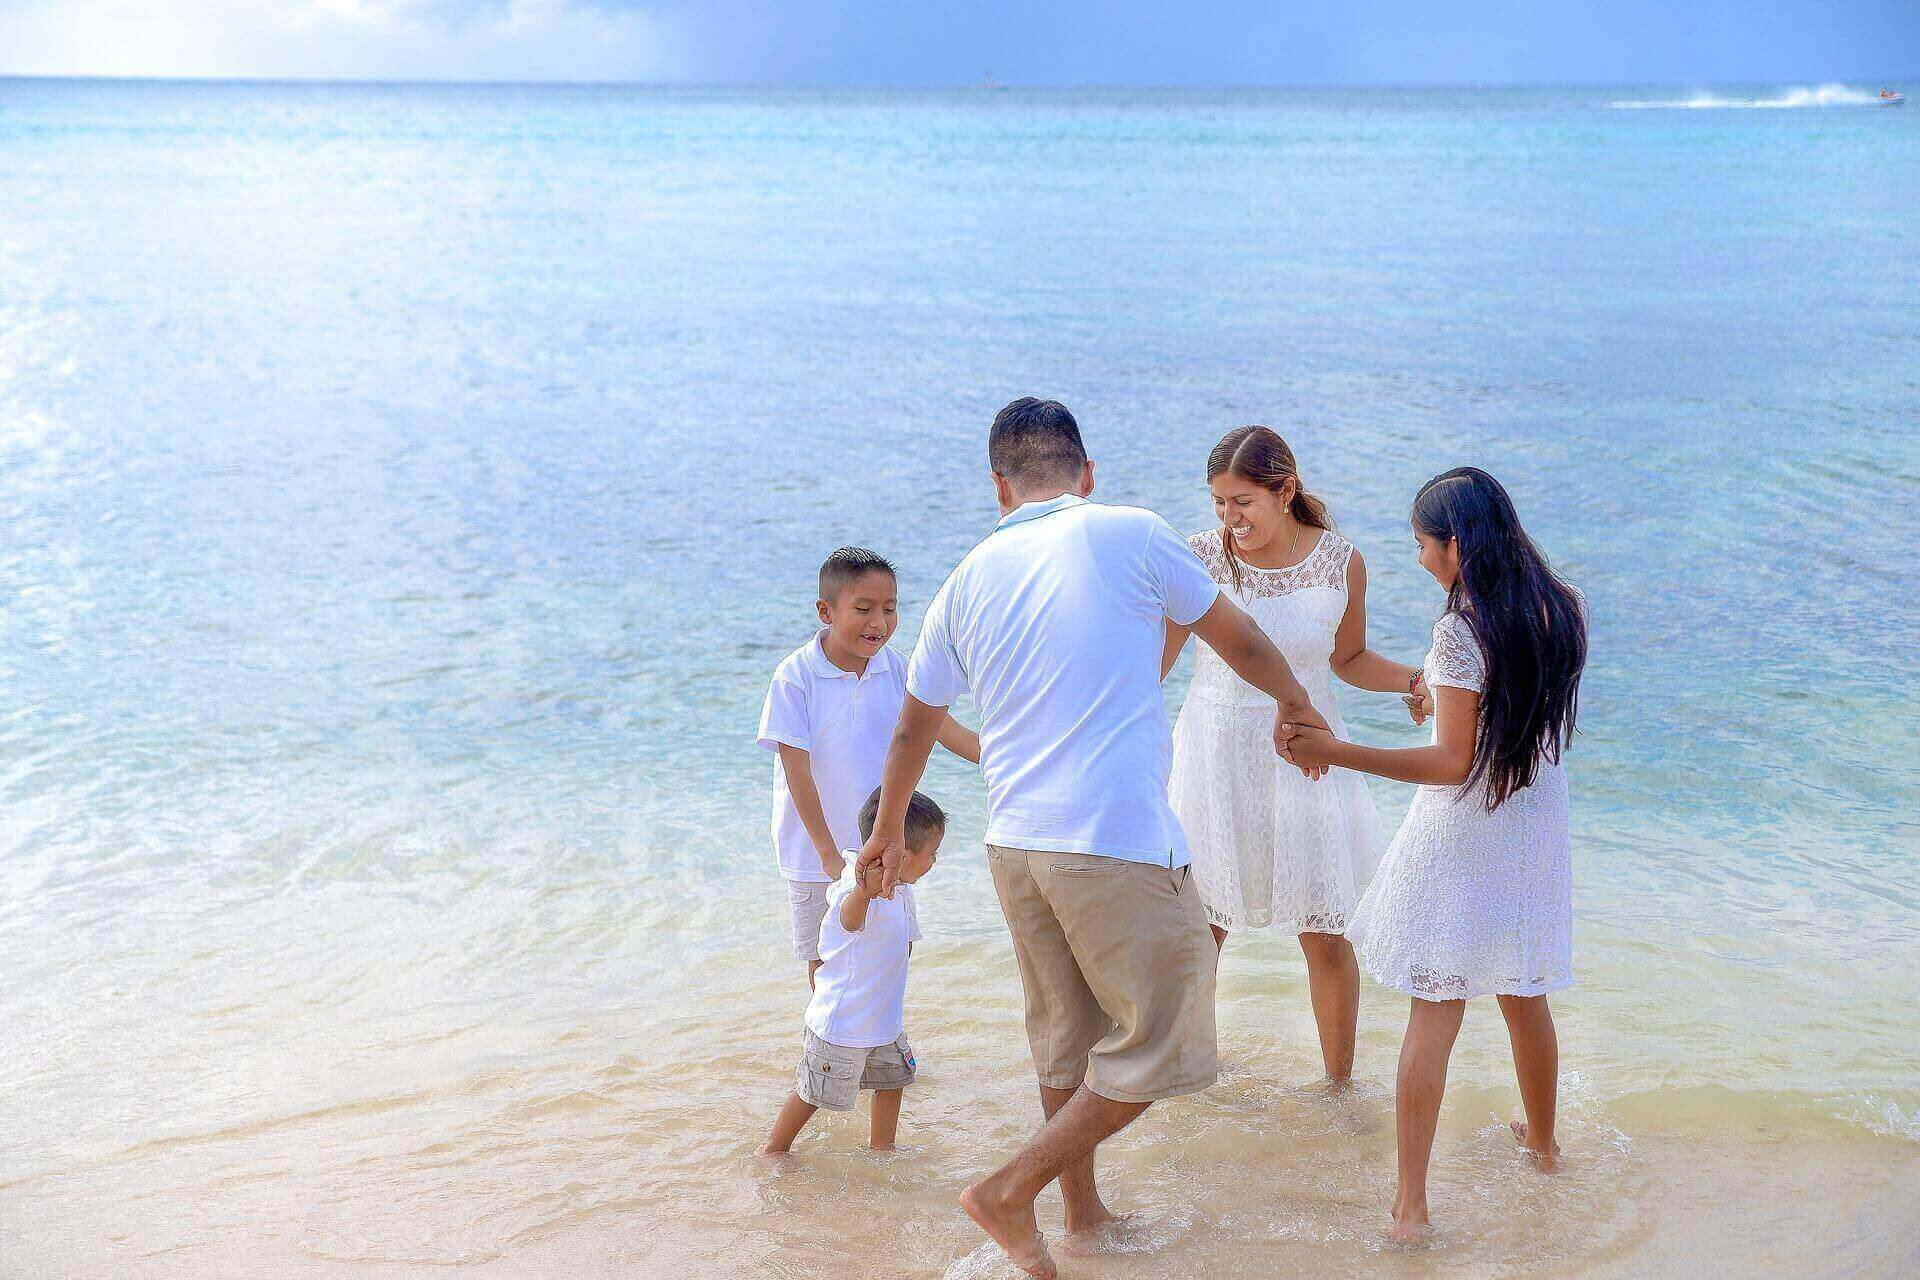 Travel with kids – Tips you should know